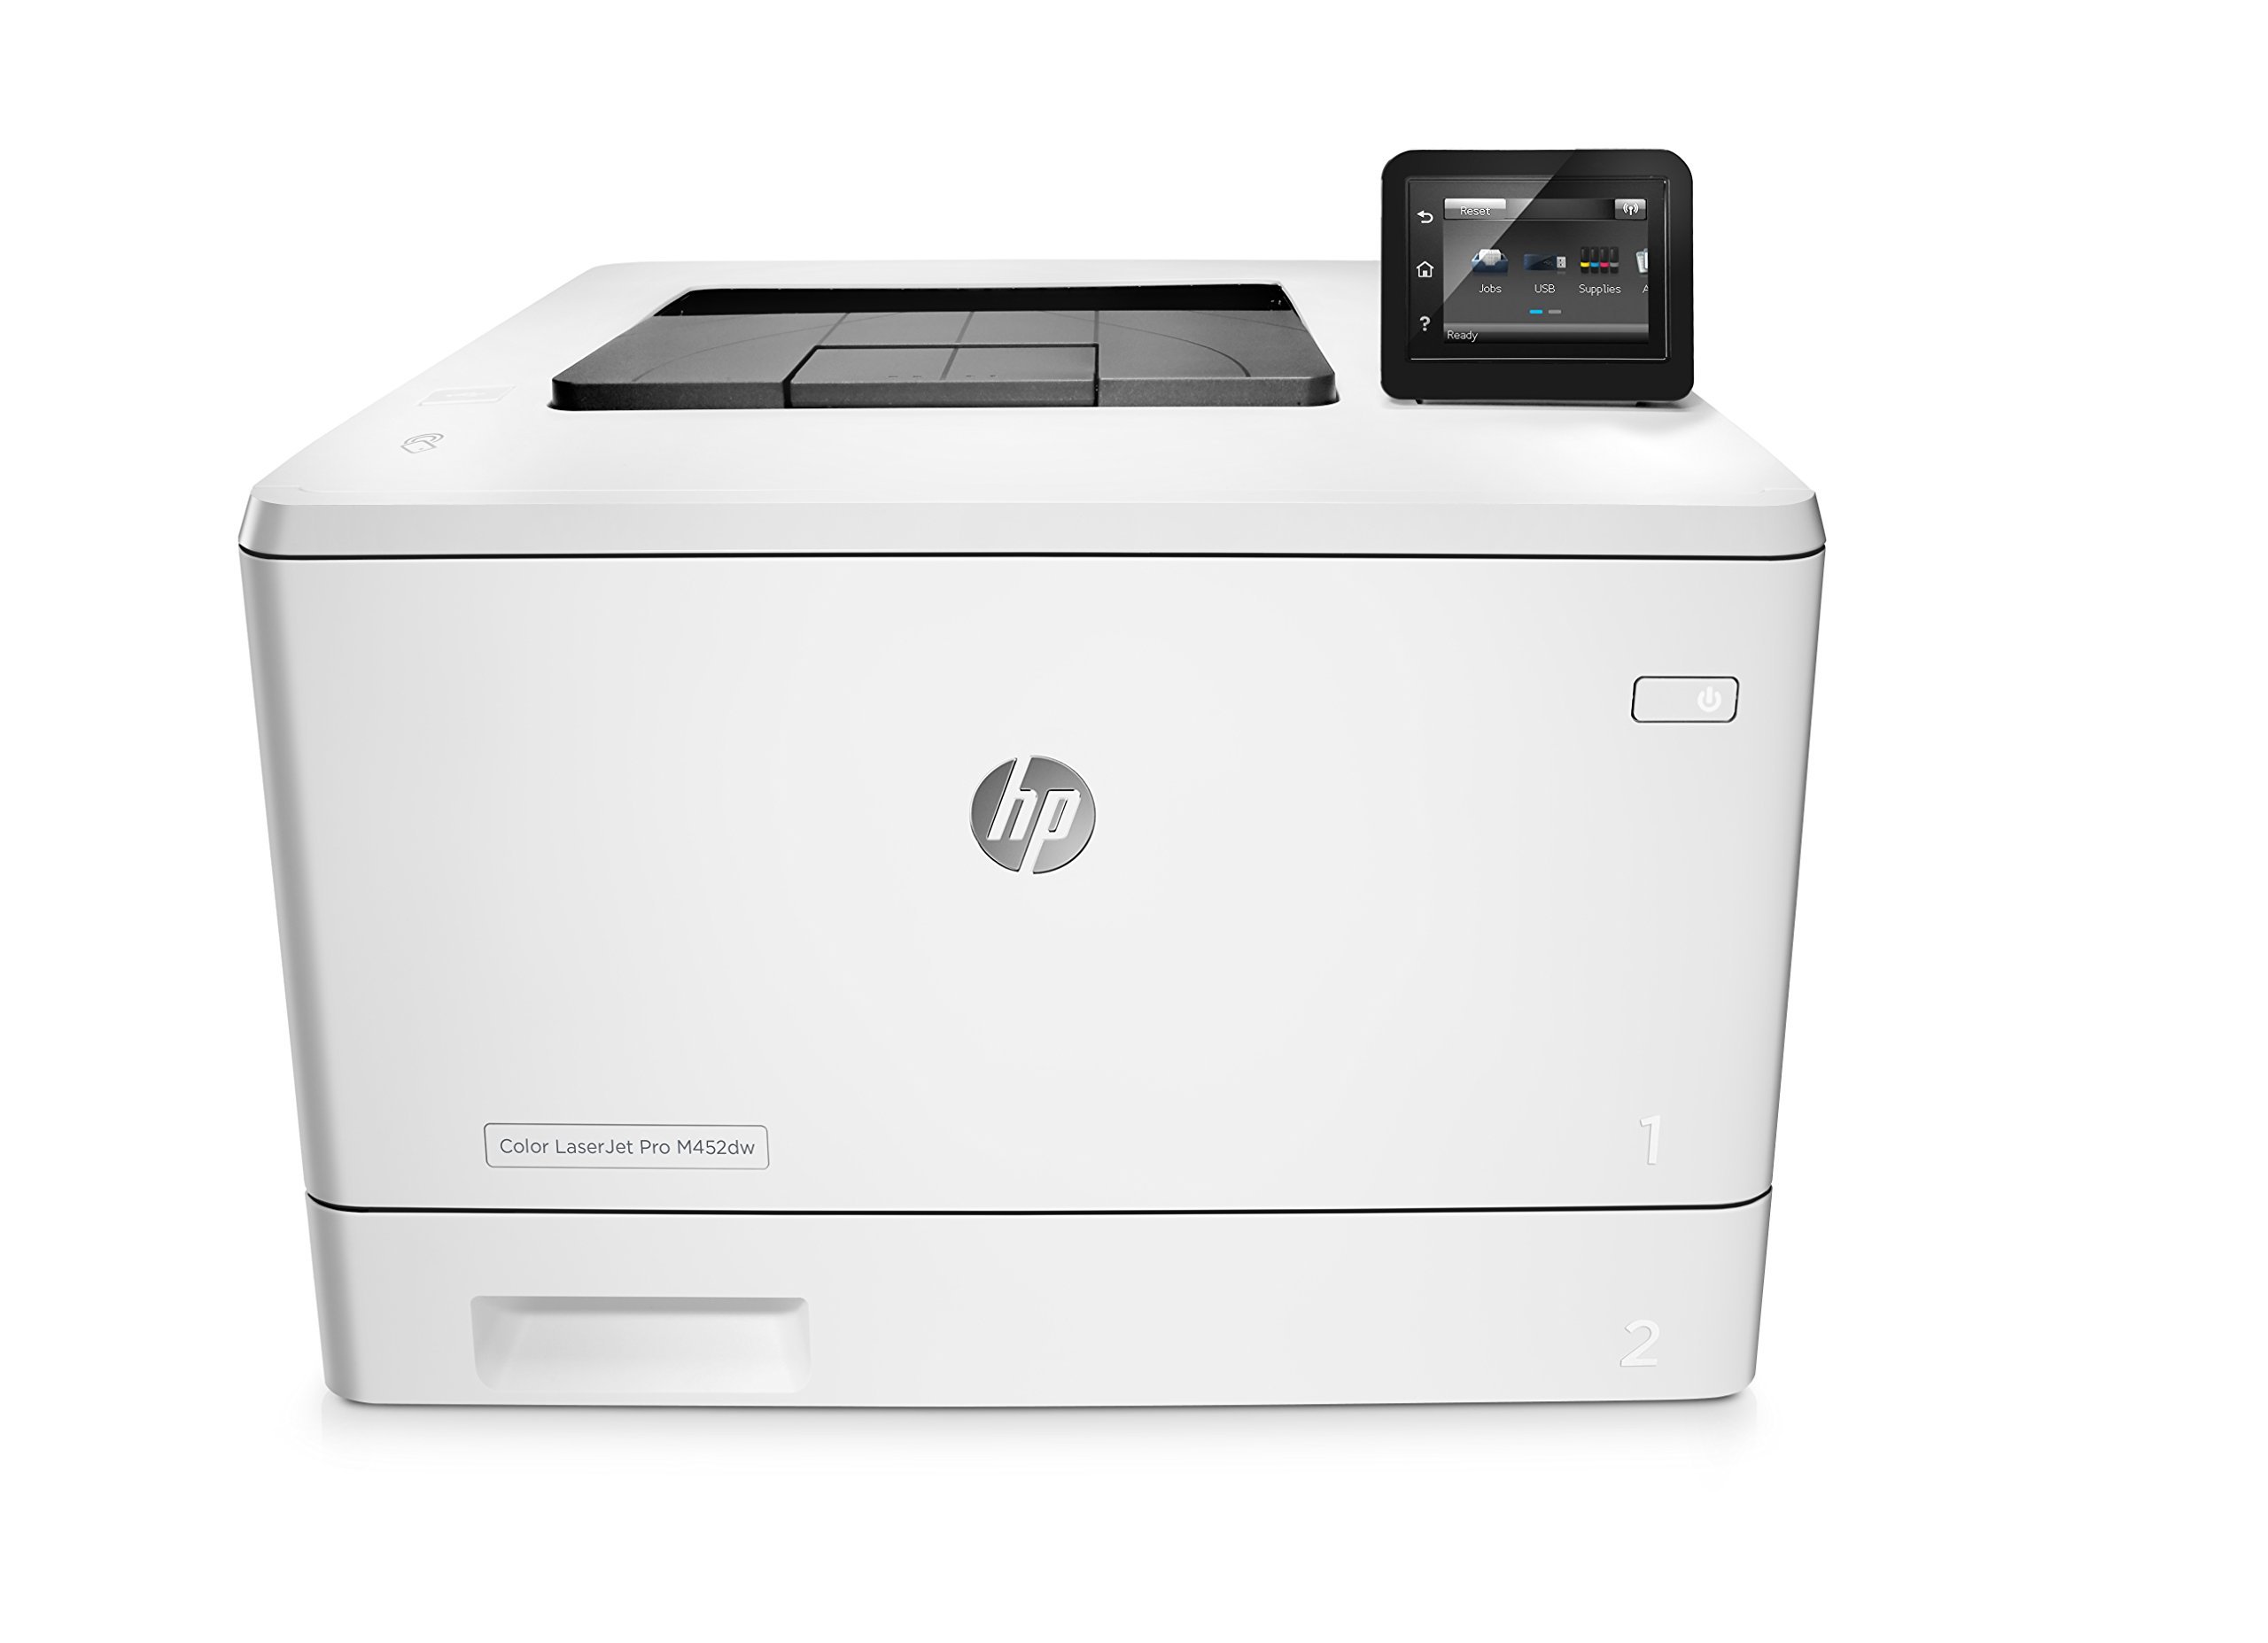 HP Laserjet Pro M452dw Wireless Color Printer, (CF394A)